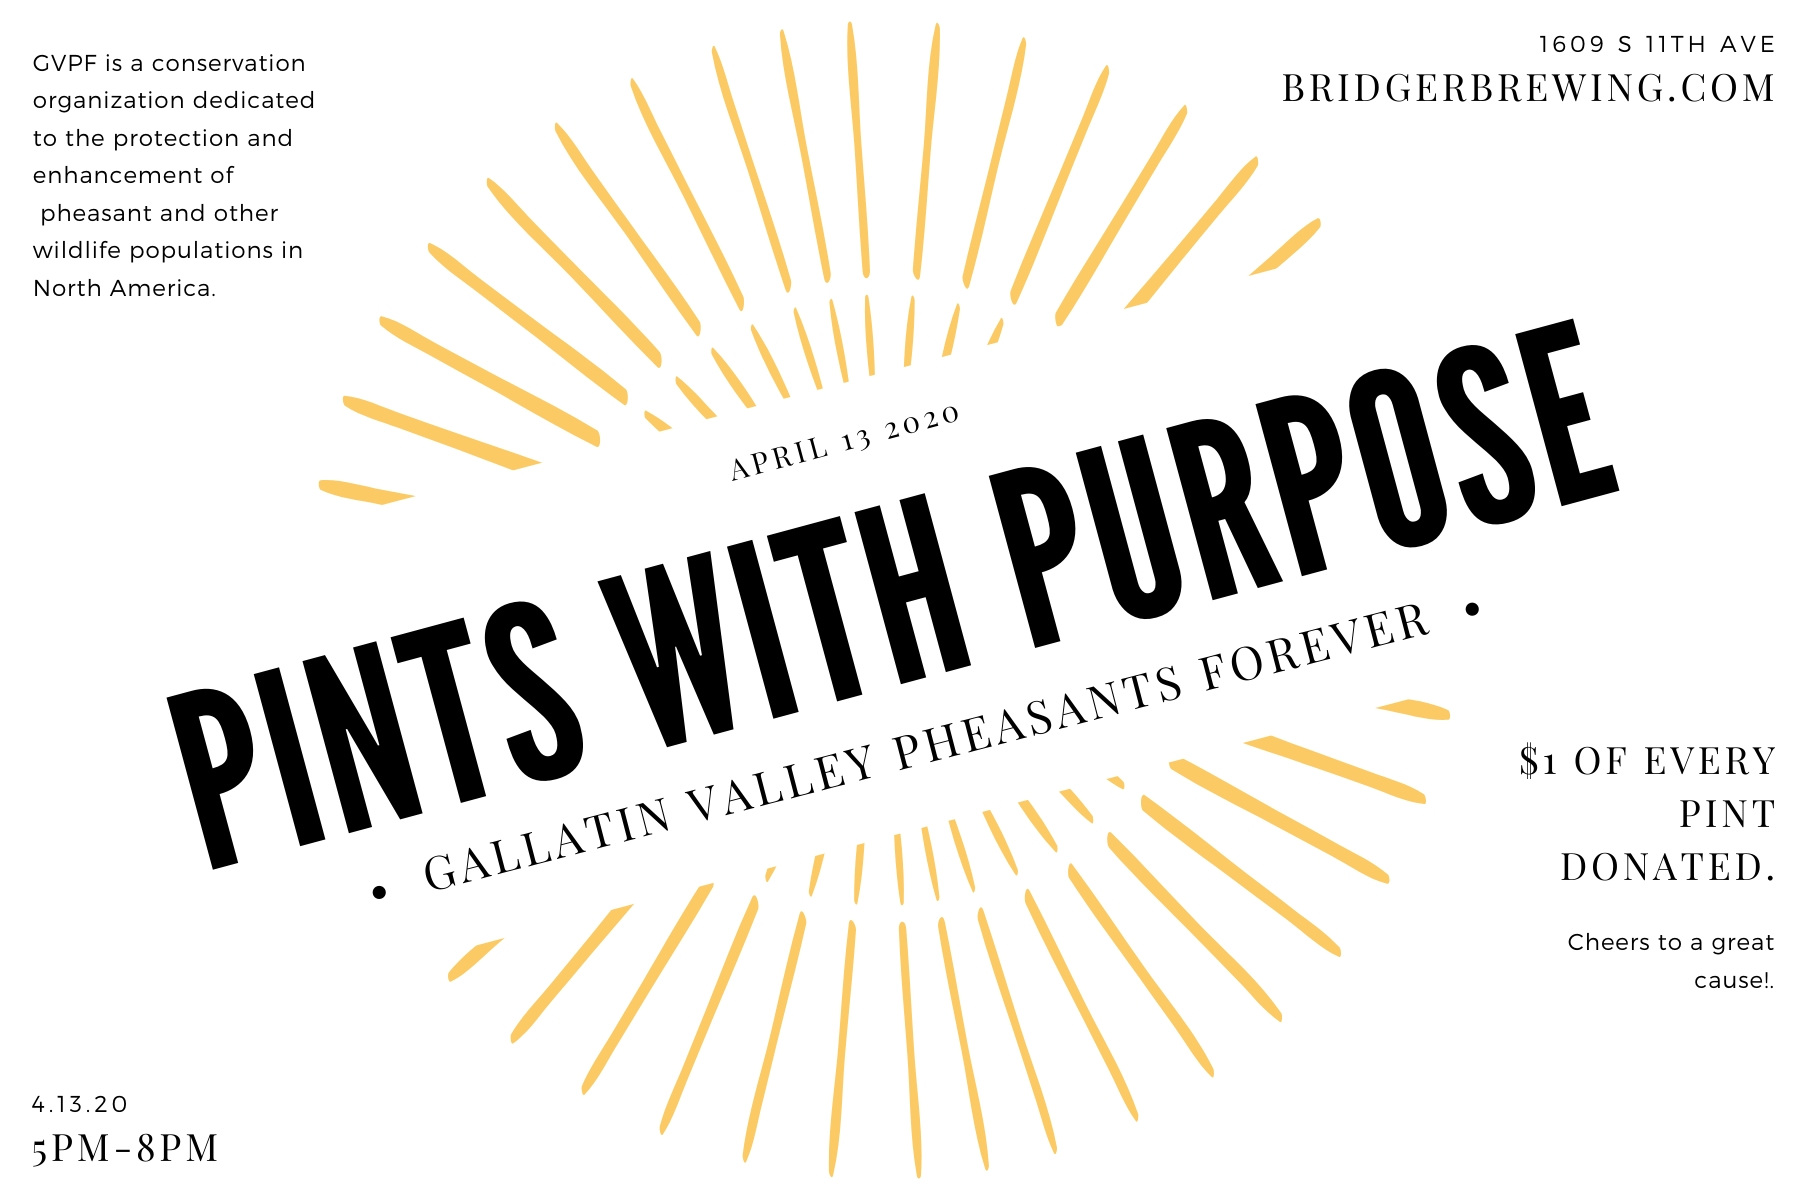 Pints with Purpose · Gallatin Valley Pheasants Forever